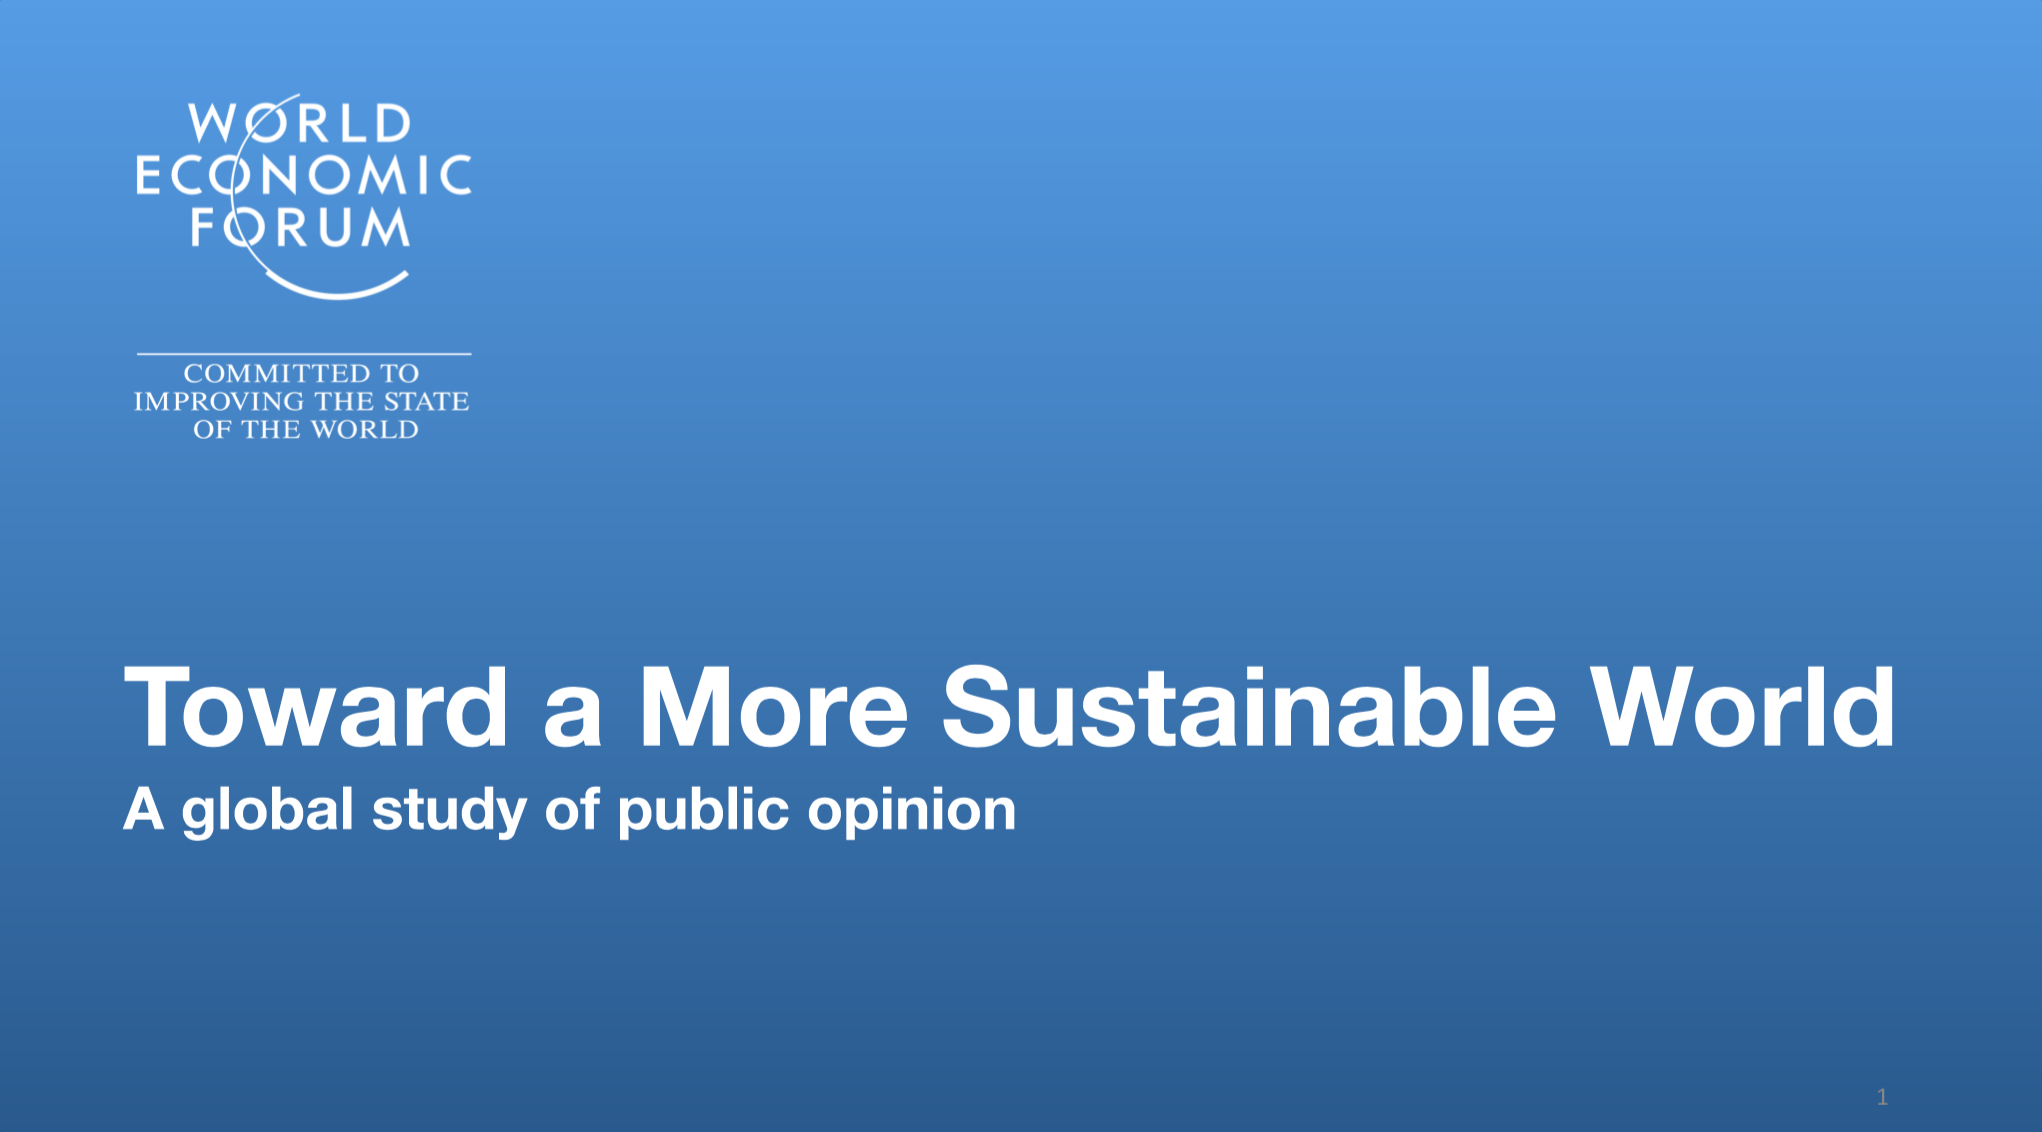 A global study of public opinion on Sustainable World